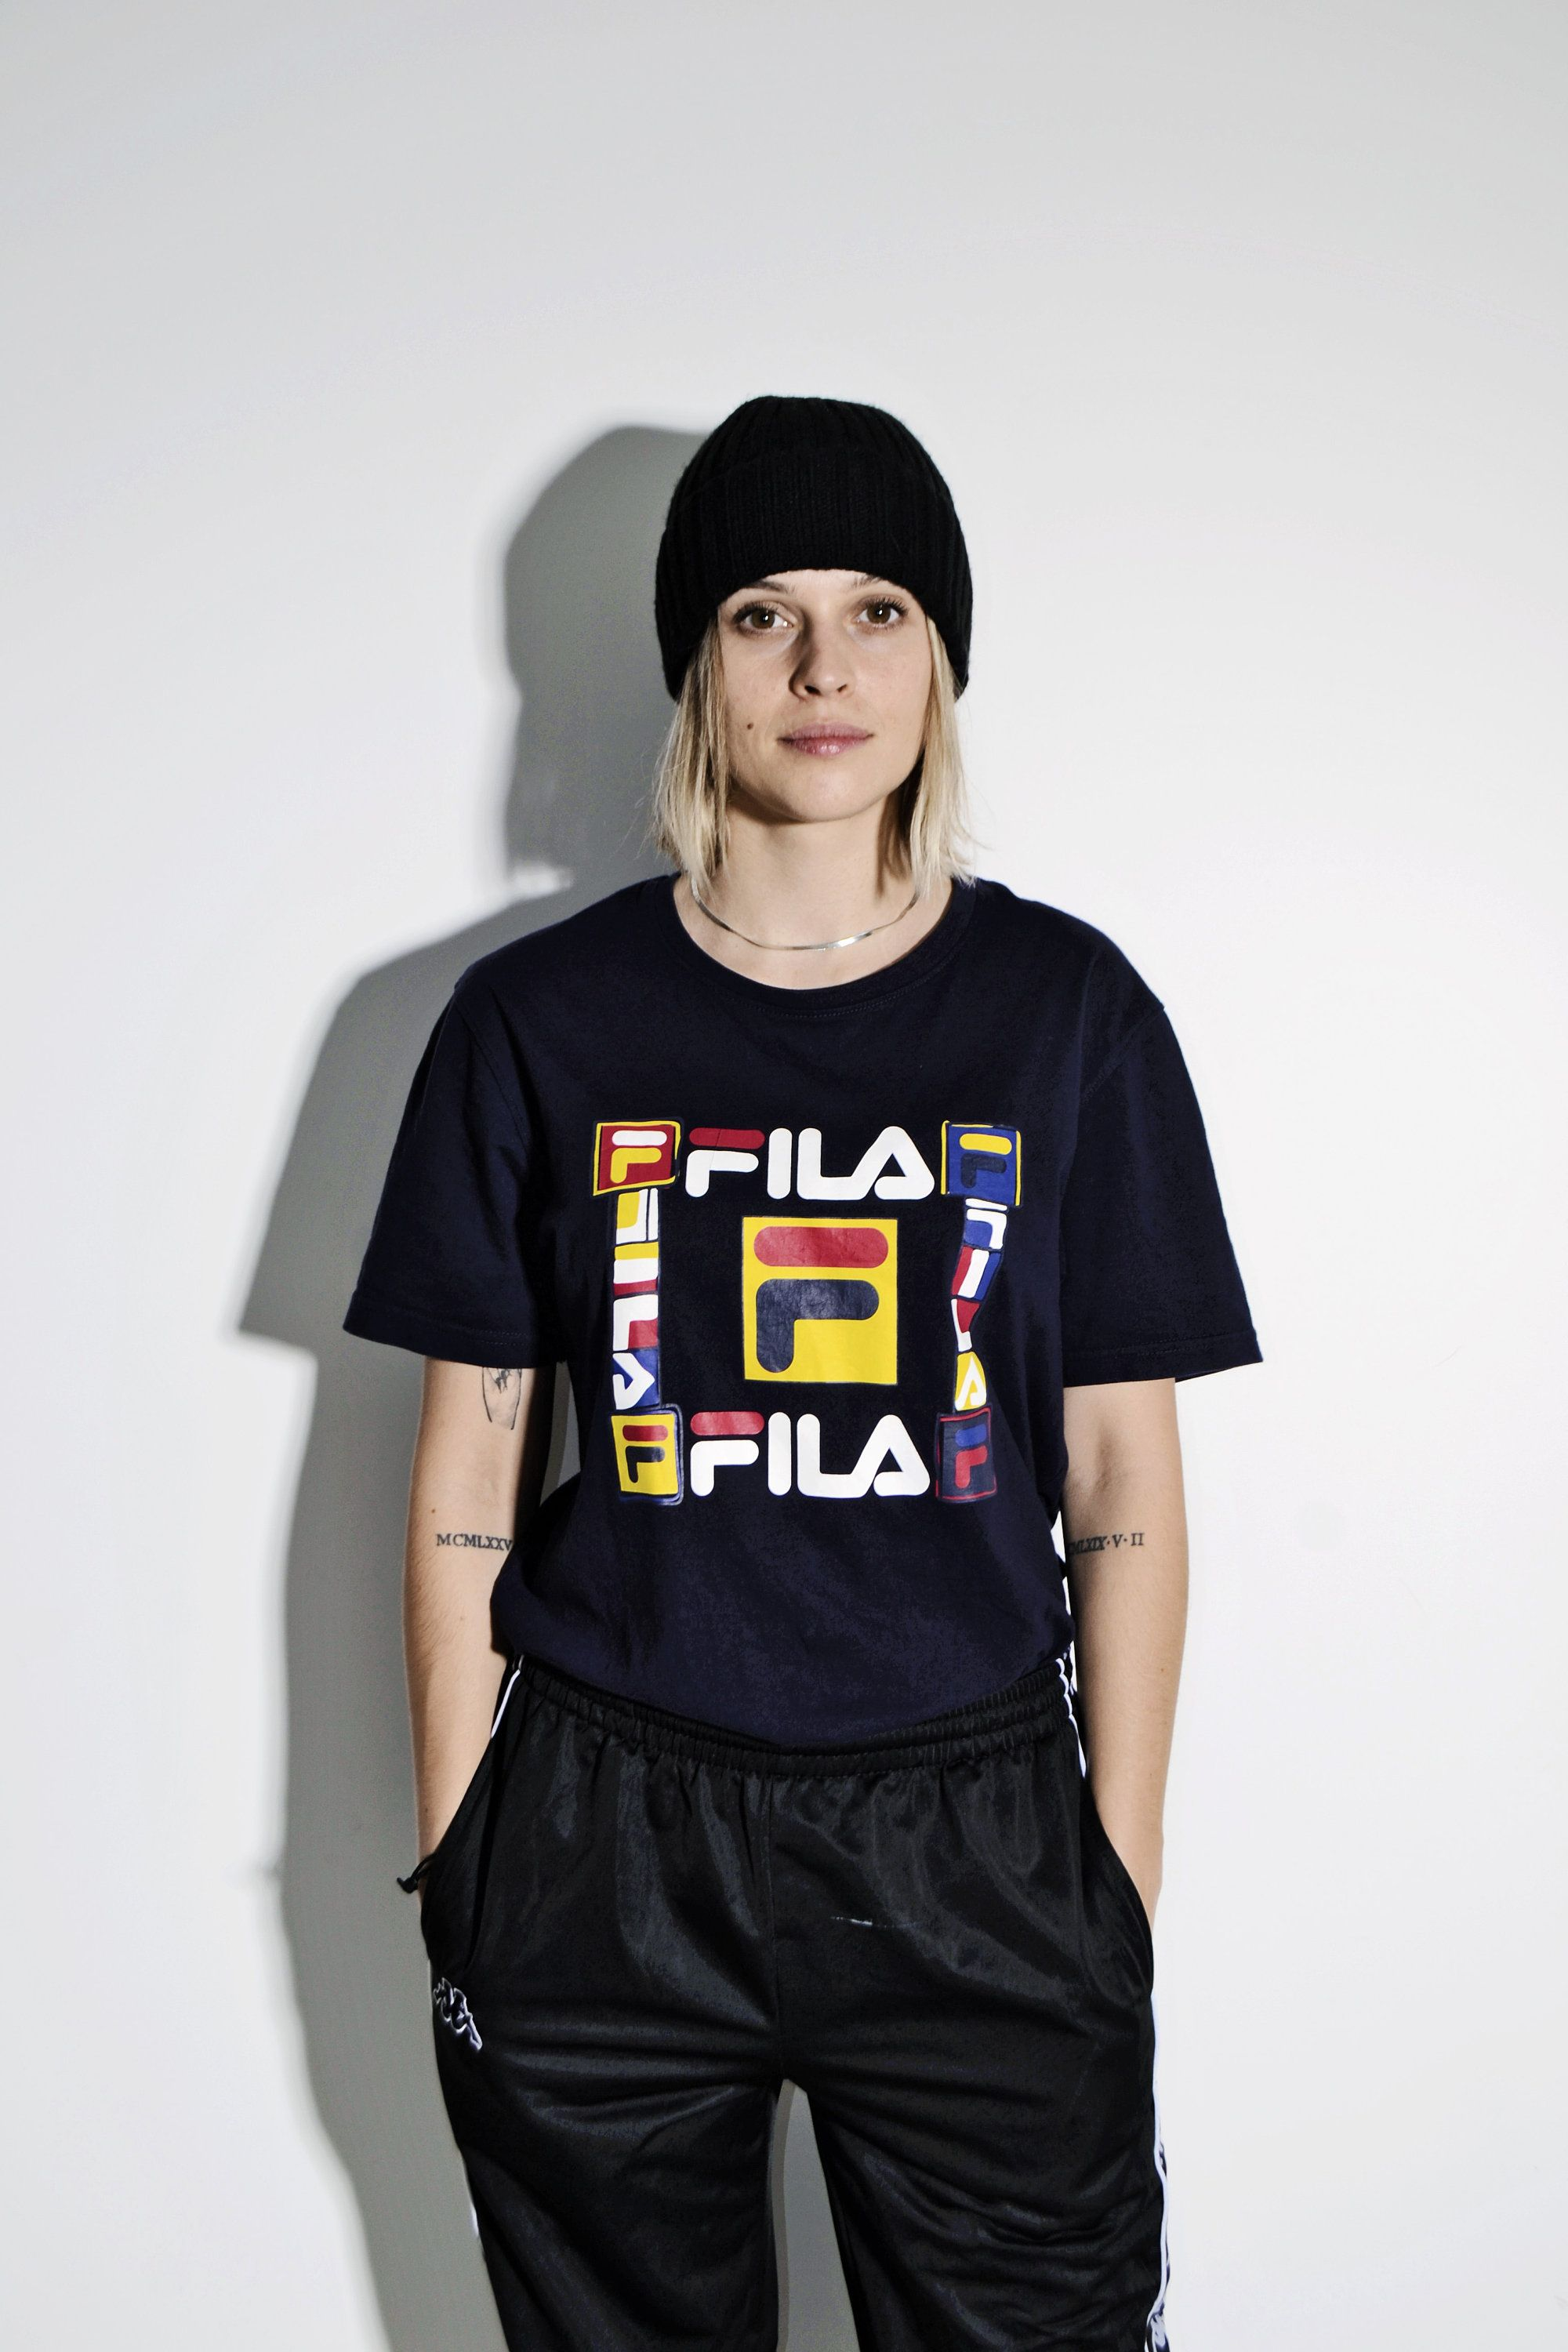 Fila 90s Vintage T Shirt For Women Branded 90s Style In Dark Blue And Multi Logo Print Sports Tee Retro 90s Streetwear Size Medium M T Shirts For